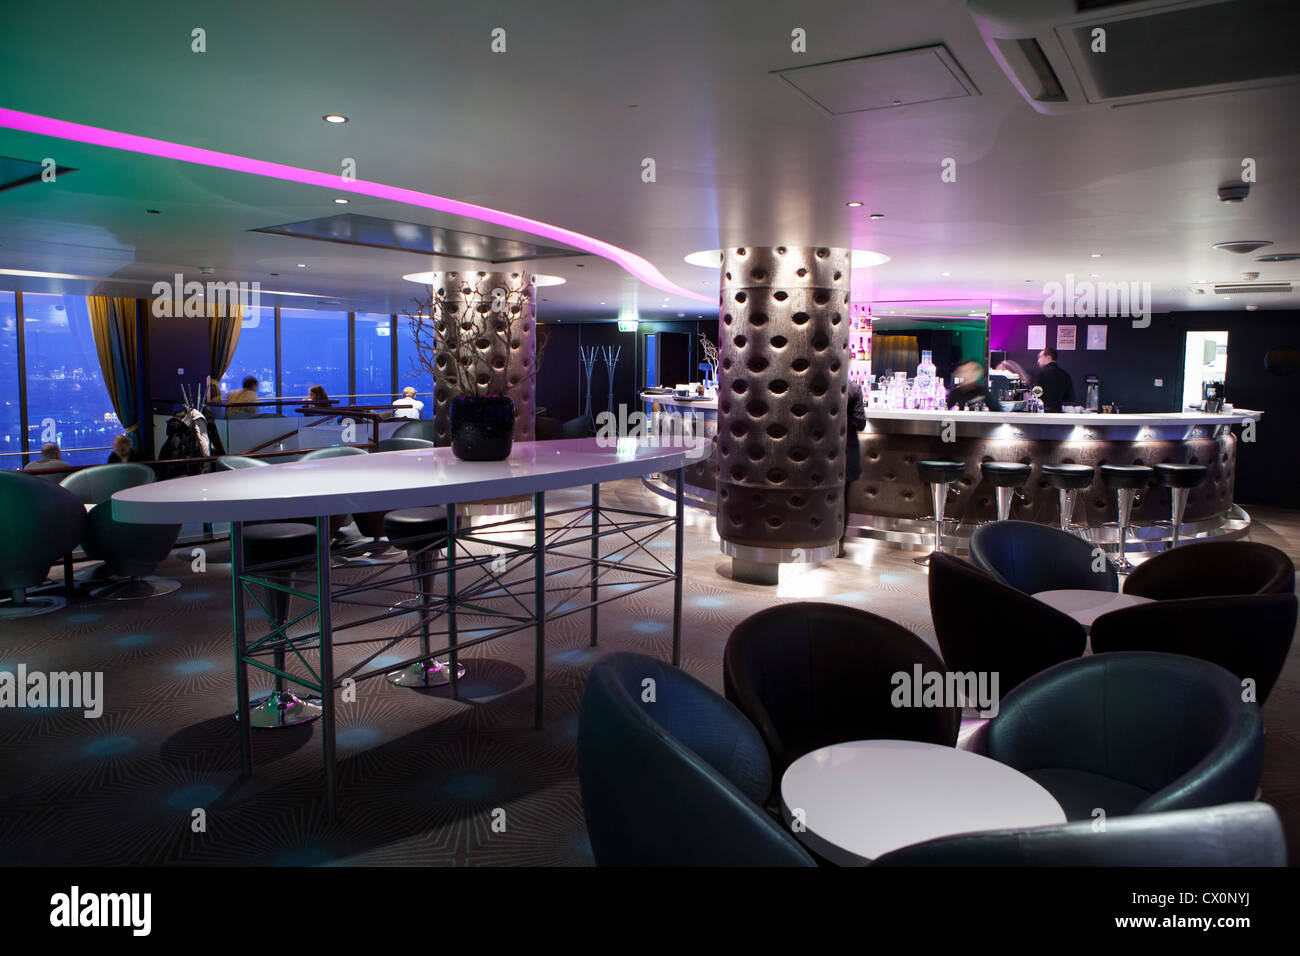 Sky bar Radisson BLU hotel Vilnius Lithuania Stock Photo: 50419030 - Alamy